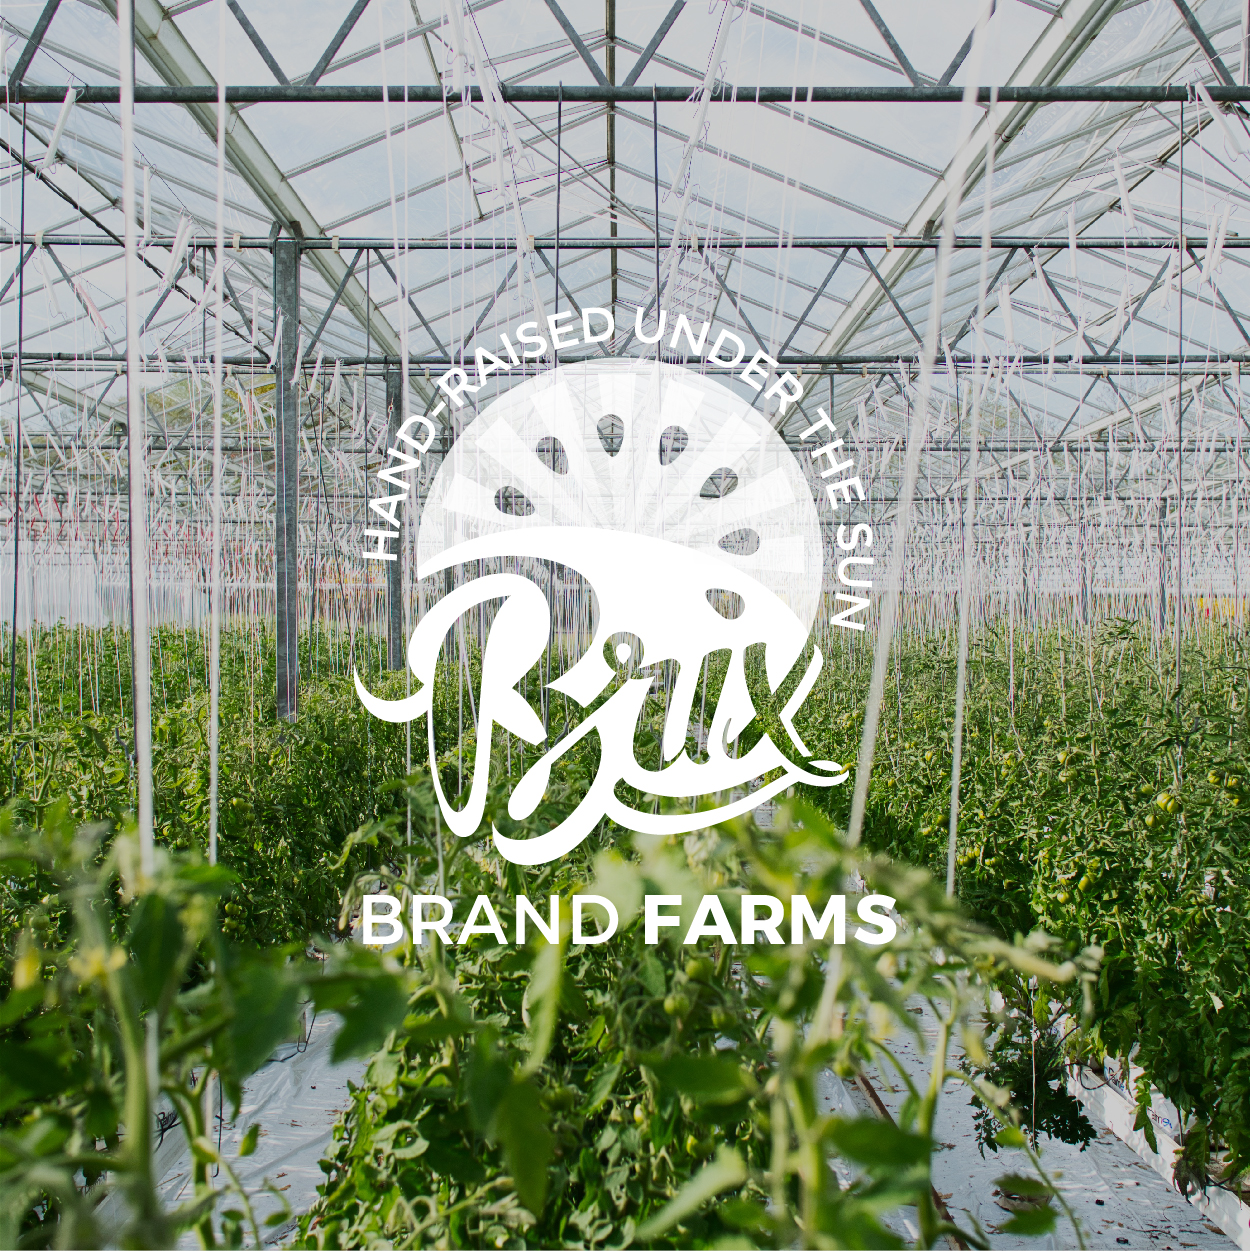 <p><strong>Brix Brand Farms</strong></p>